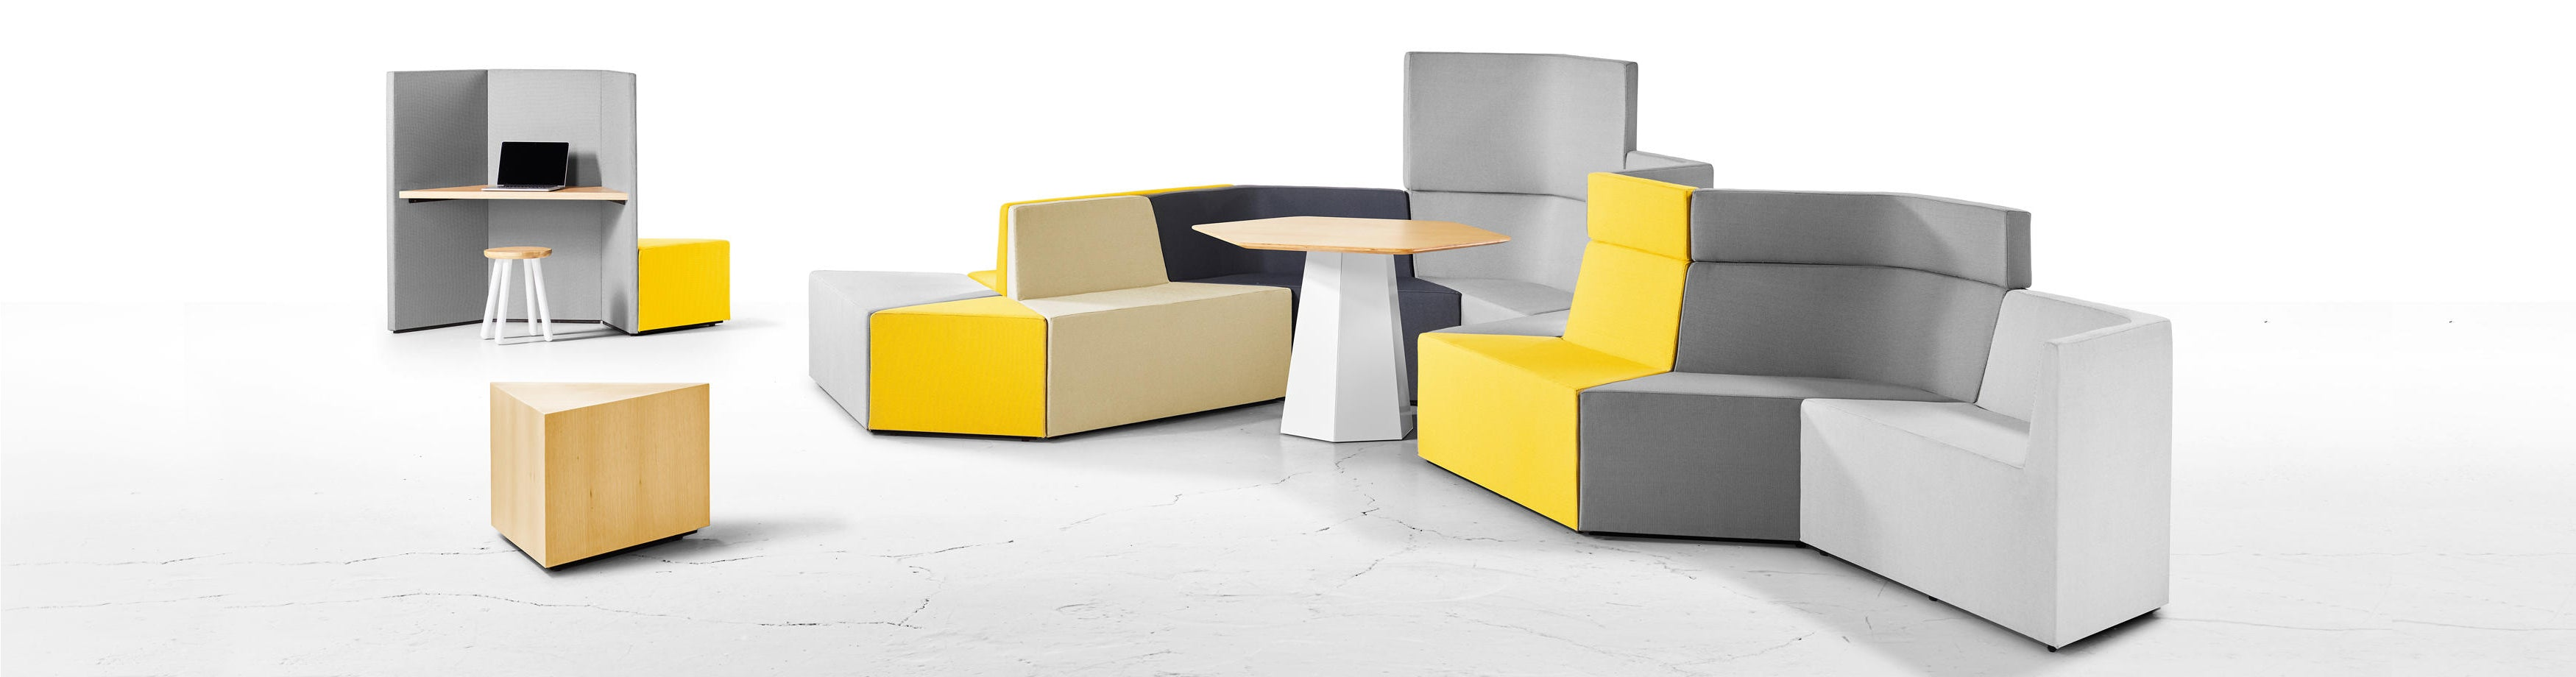 Derlot Editions Prisma Modular Seating